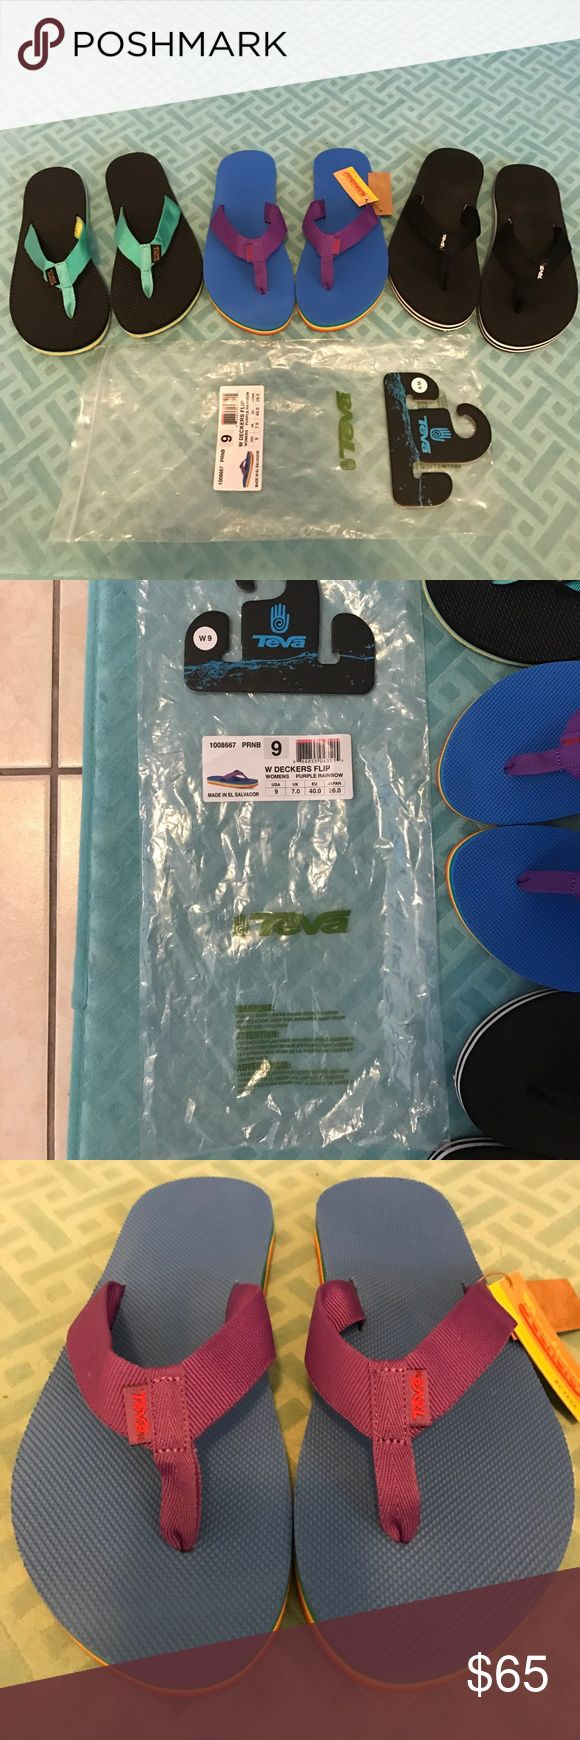 3 pairs of Teva flip flops womens size 9 Rainbow 🌈 double decker brand new with bag. Black/white double decker Excellent condition. Green yellow & black sport great condition. Teva Shoes Sandals